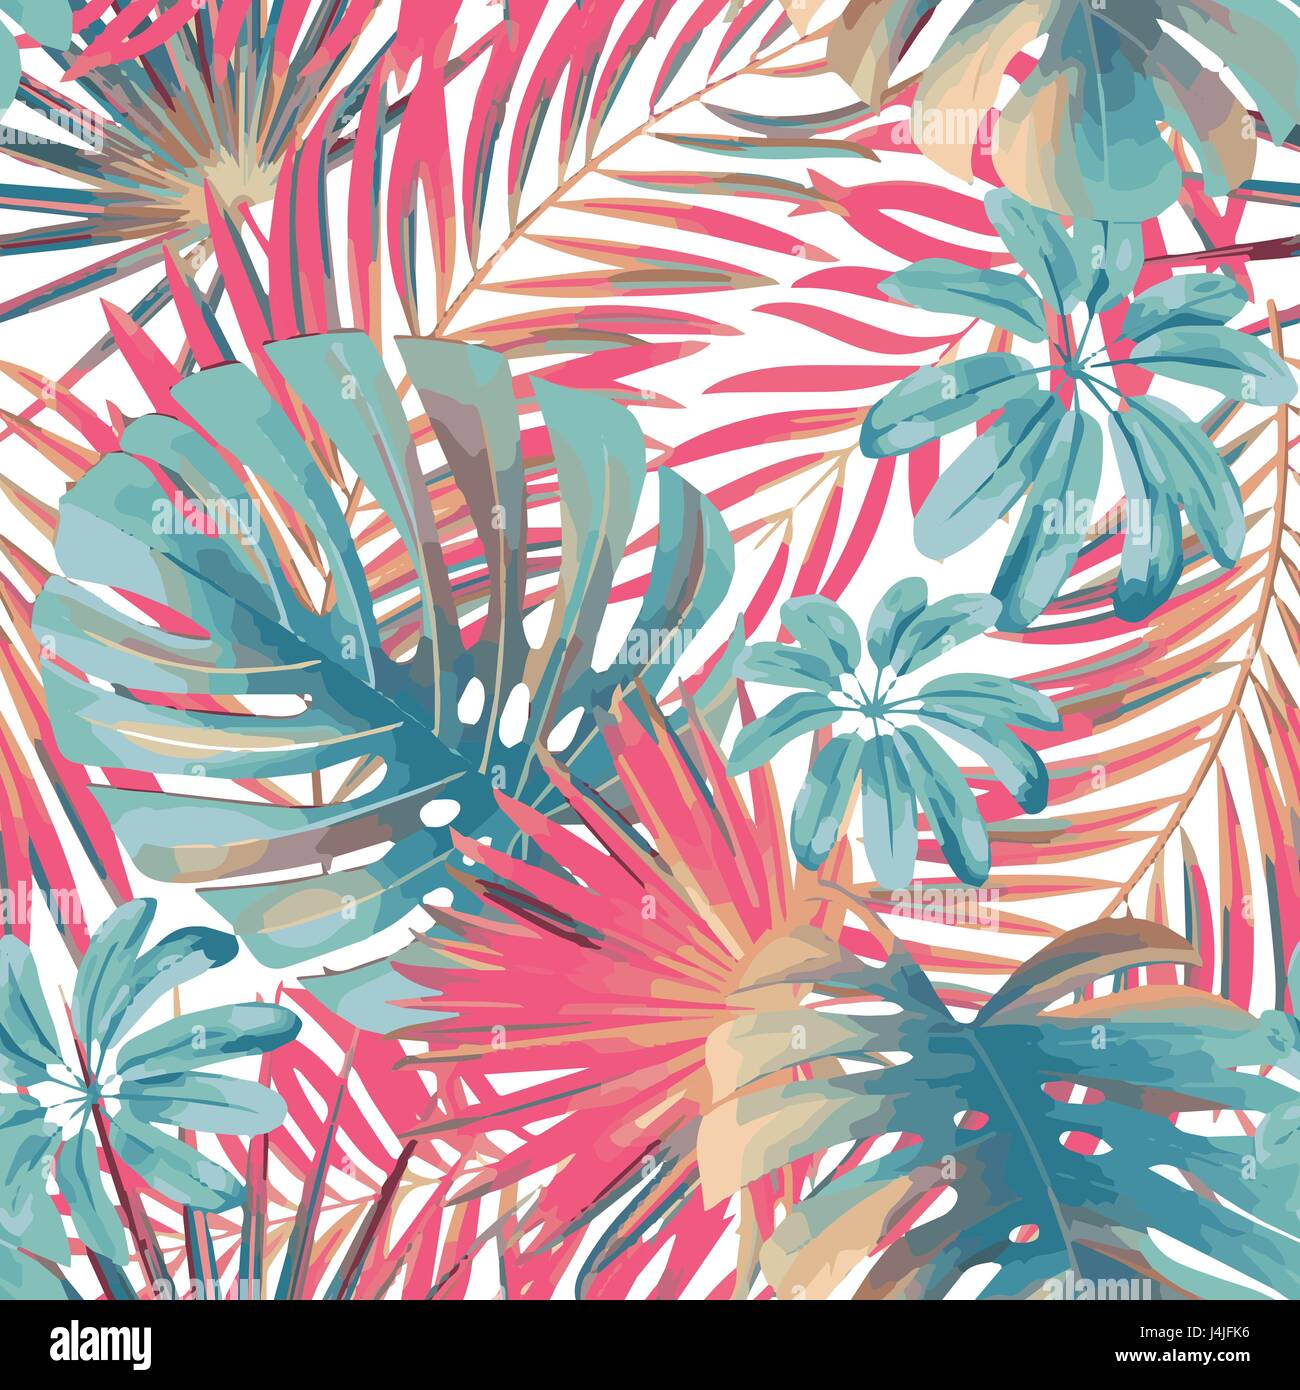 Cute Mandala Wallpapers Summer Exotic Floral Tropical Palm Monstera Leaves In